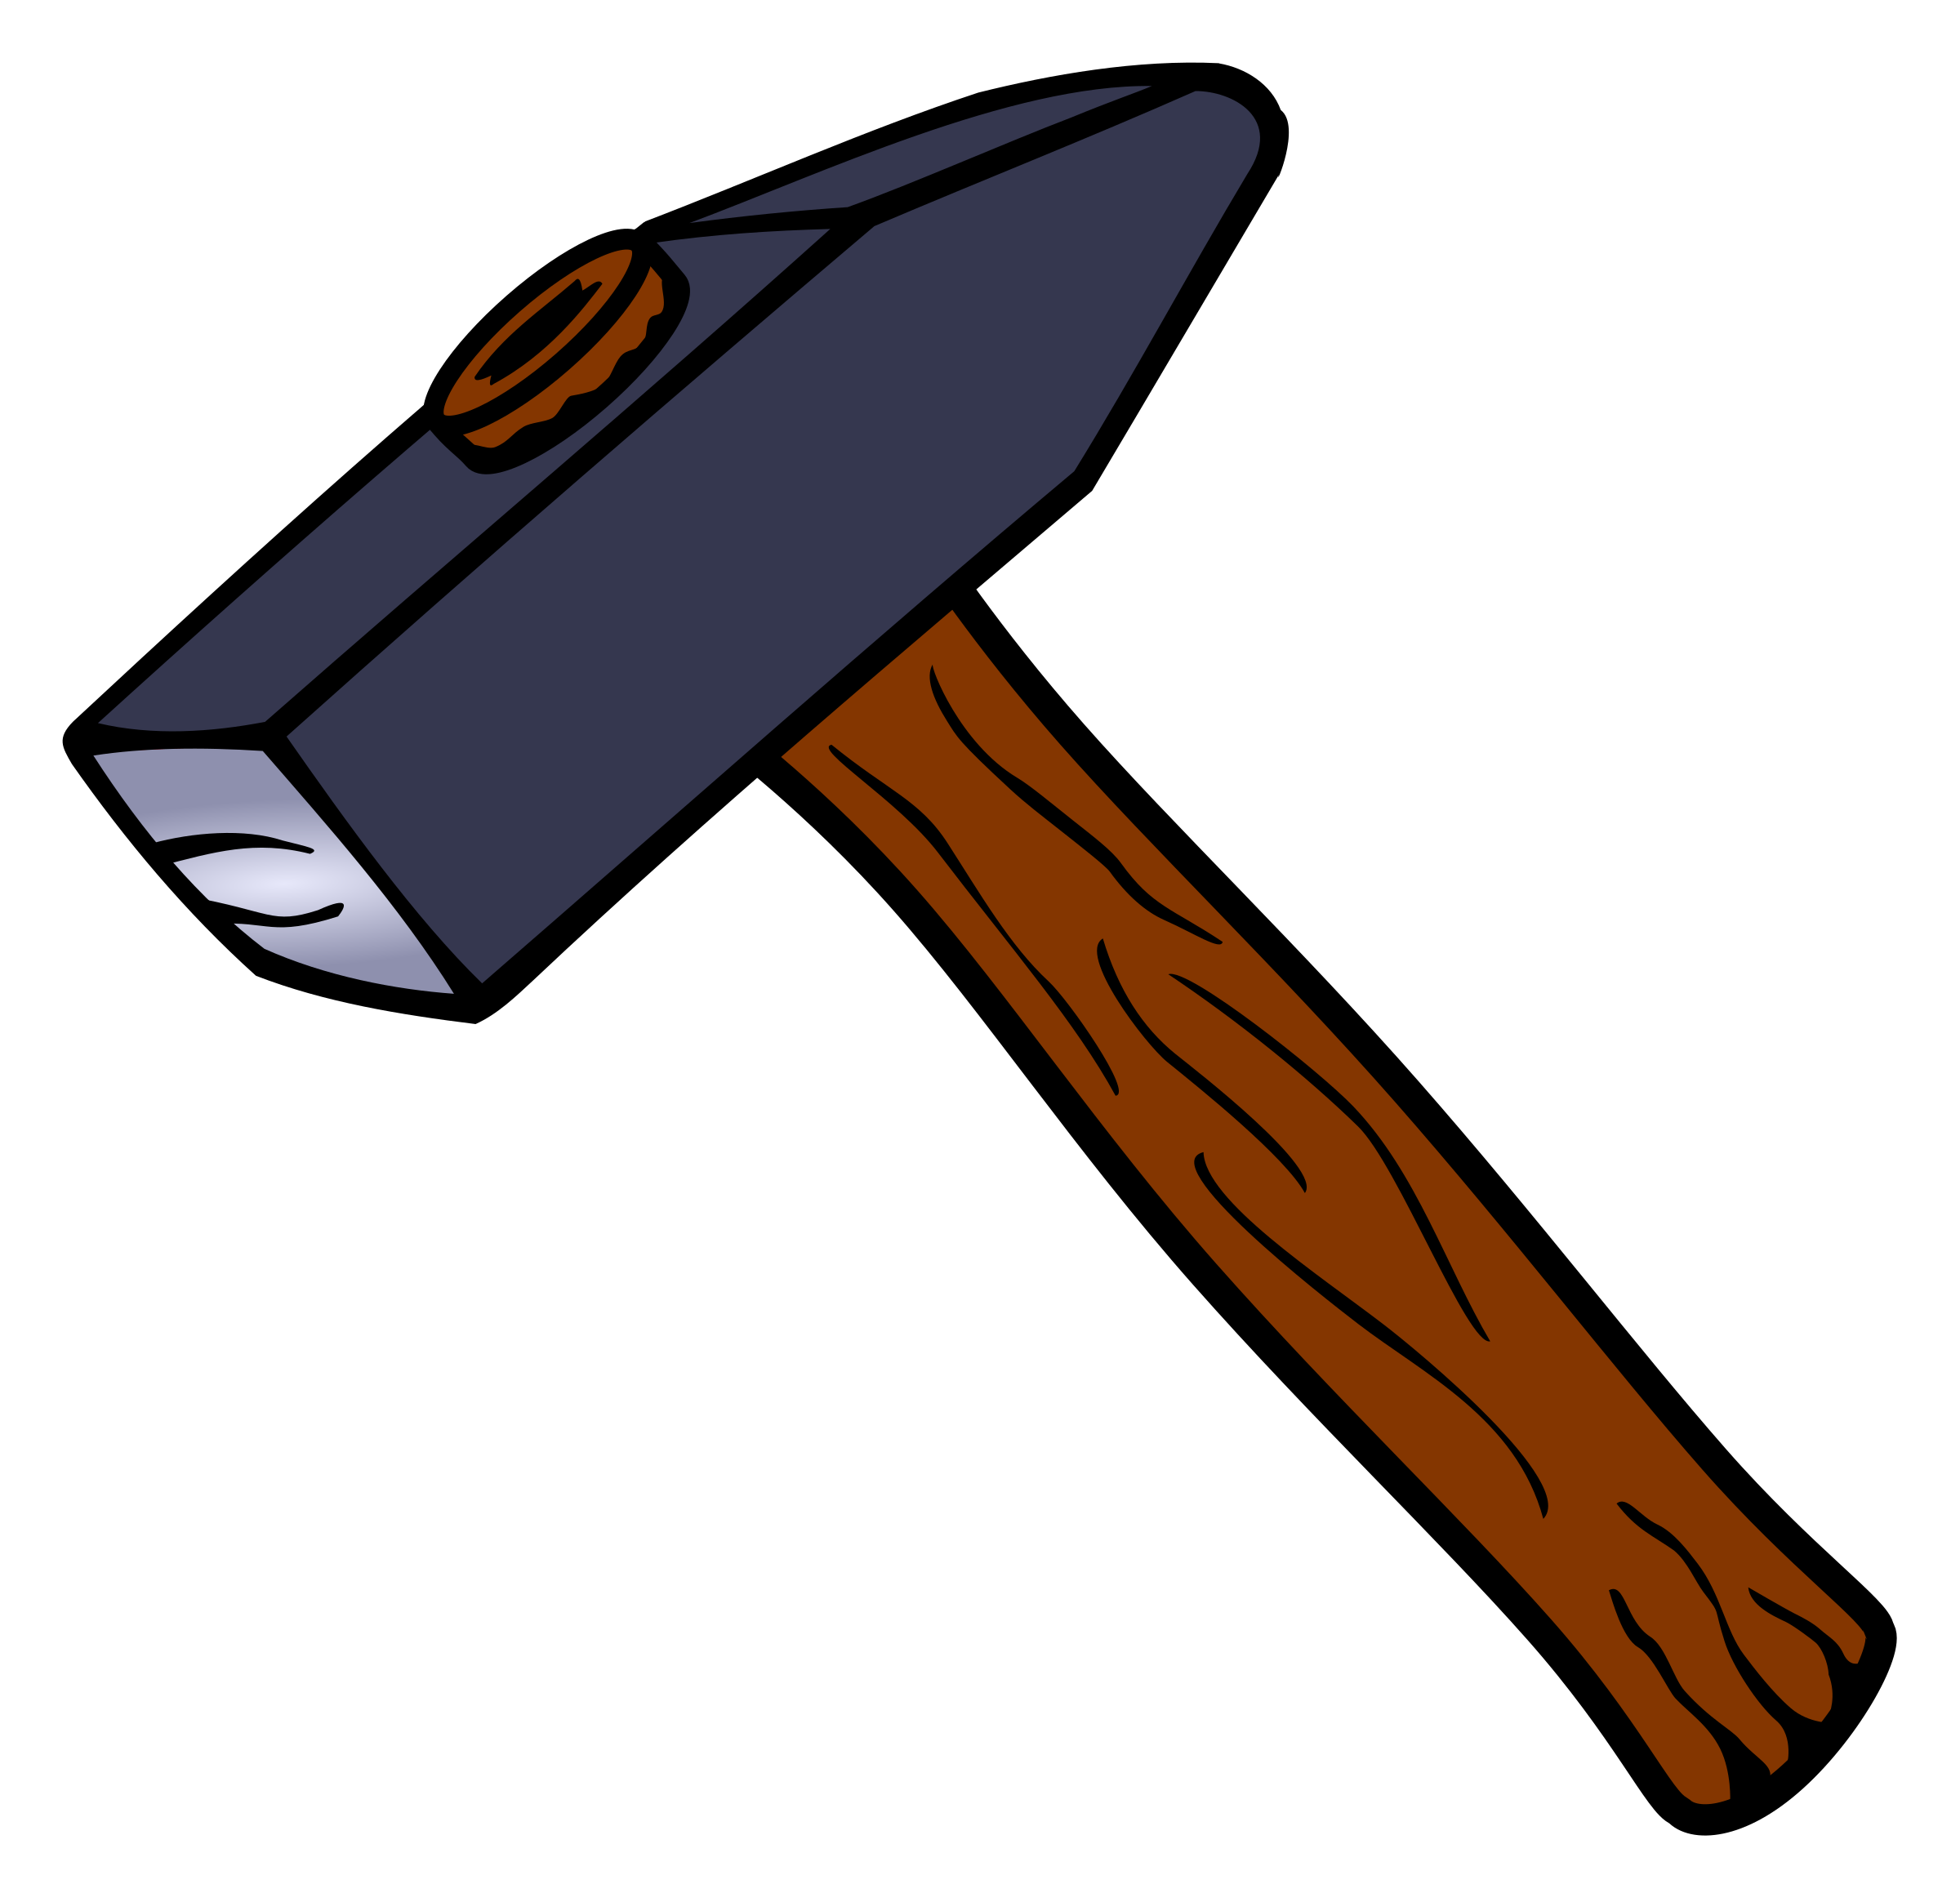 clipart hammer coloured #25405